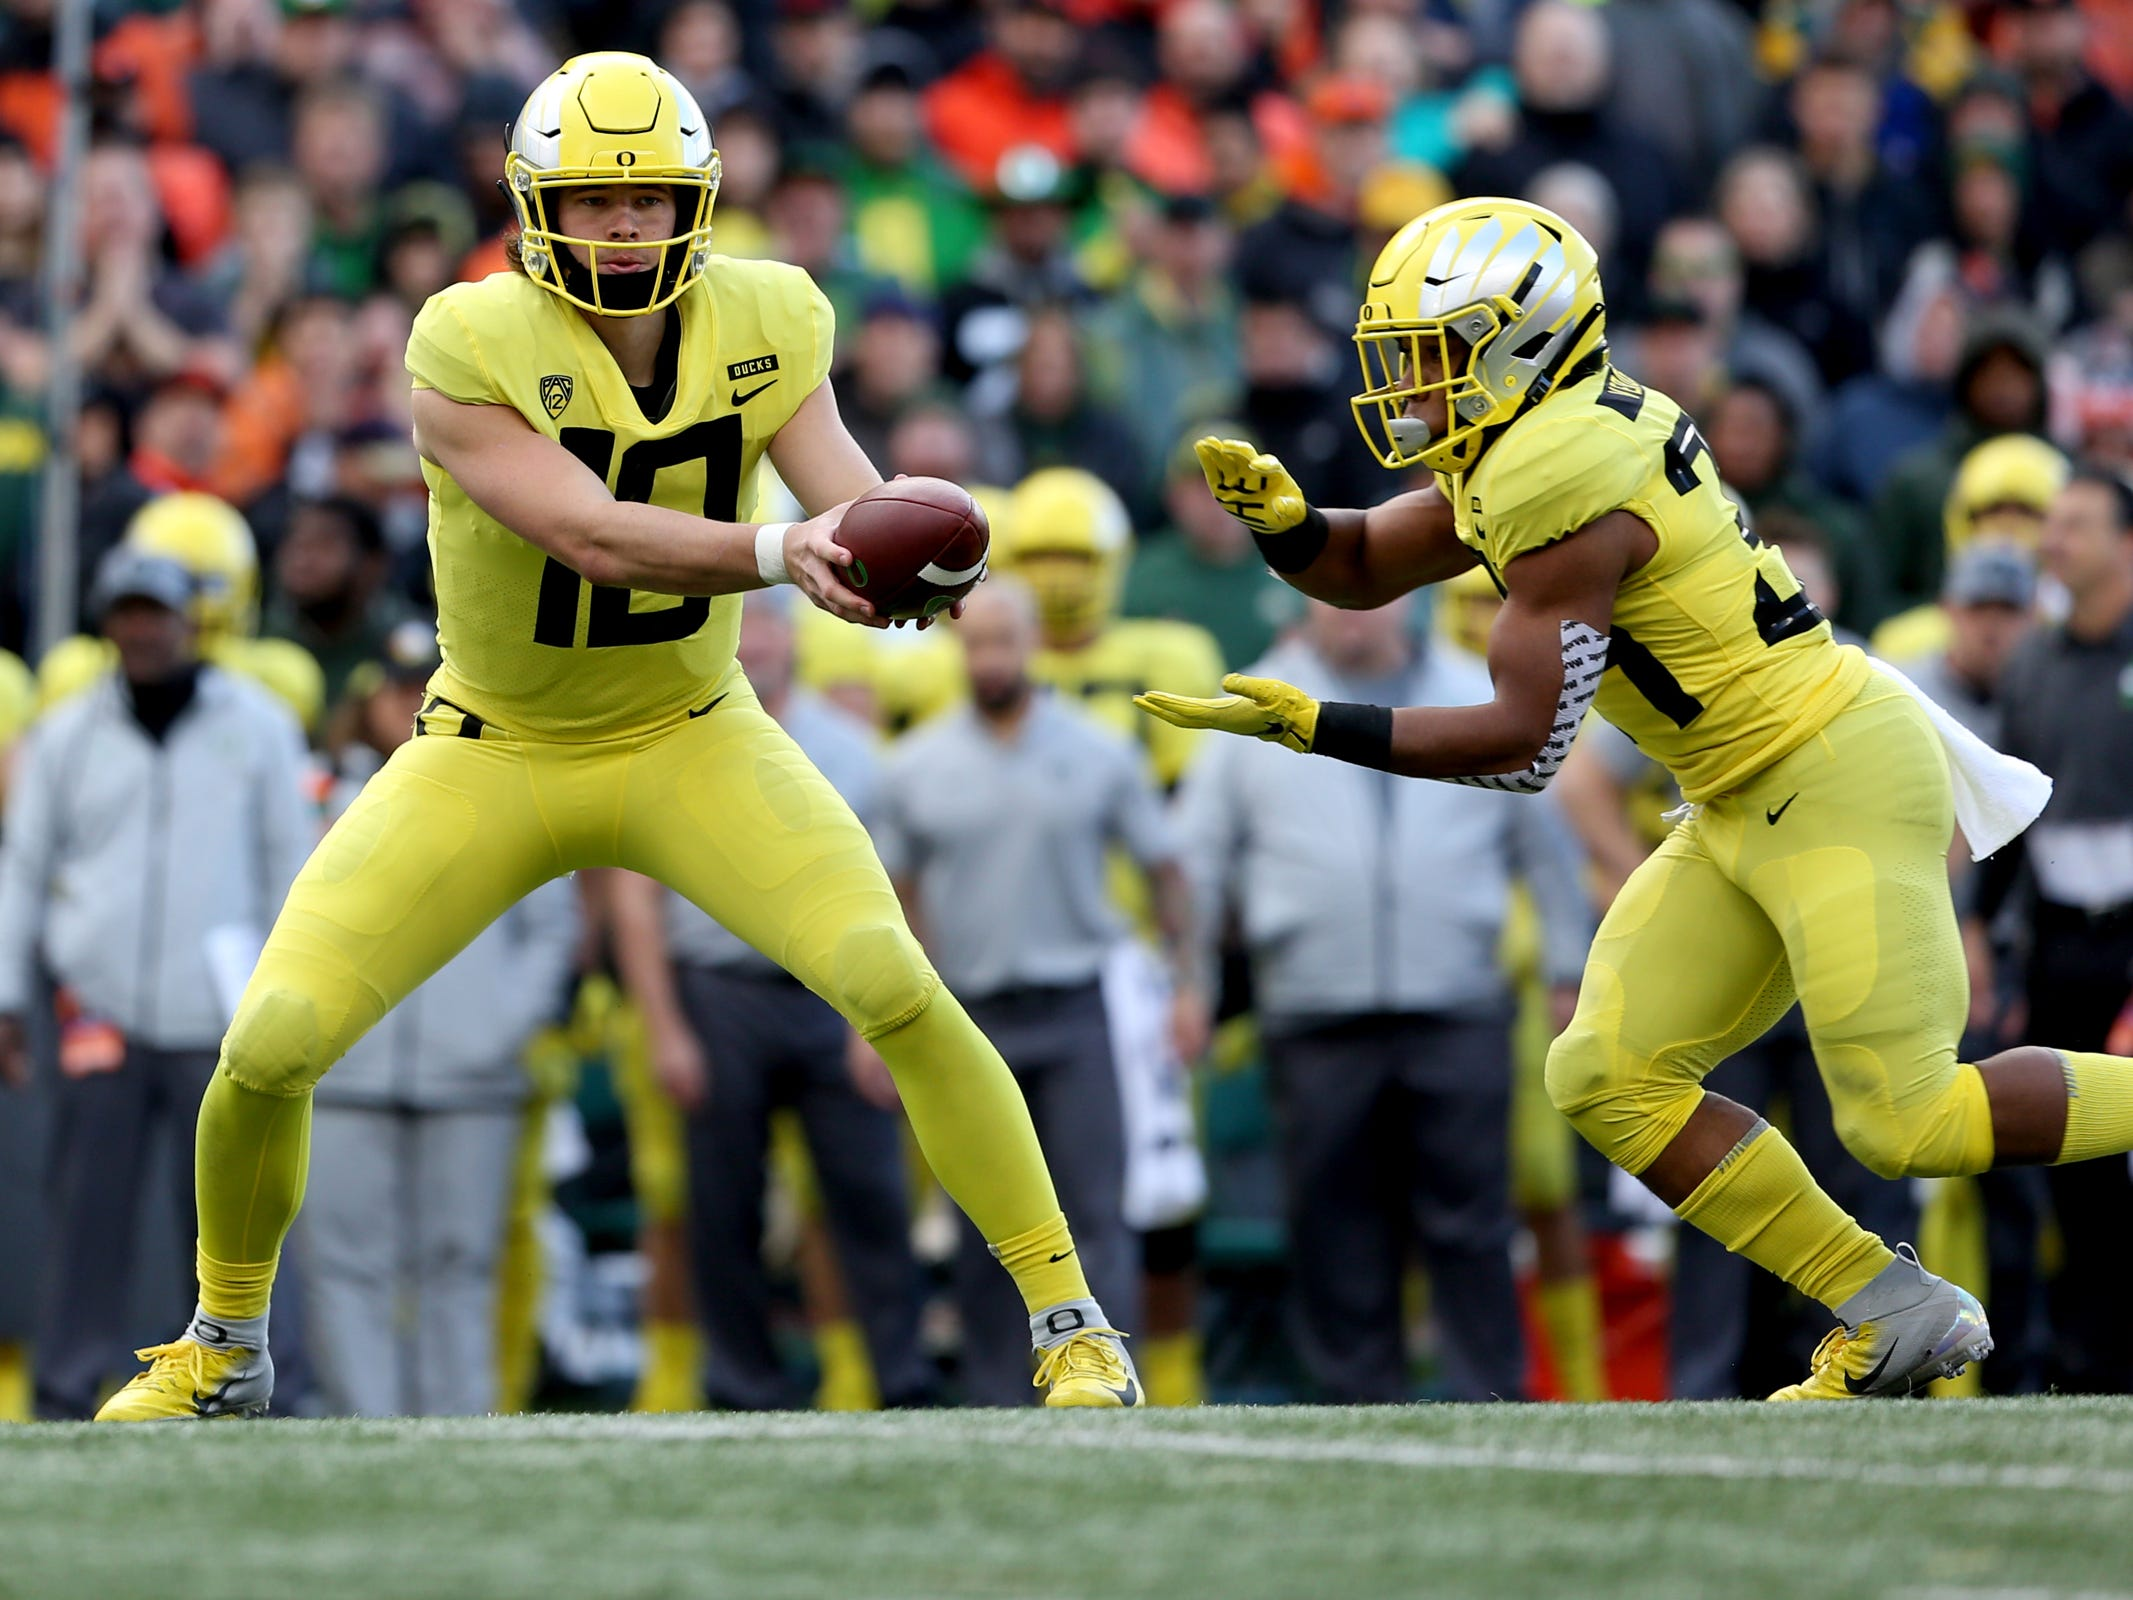 Oregon's Justin Herbert (10) hands the ball off to teammate CJ Verdell (34) in the Oregon vs. Oregon State Civil war football game at Oregon State University in Corvallis on Friday, Nov. 23, 2018.